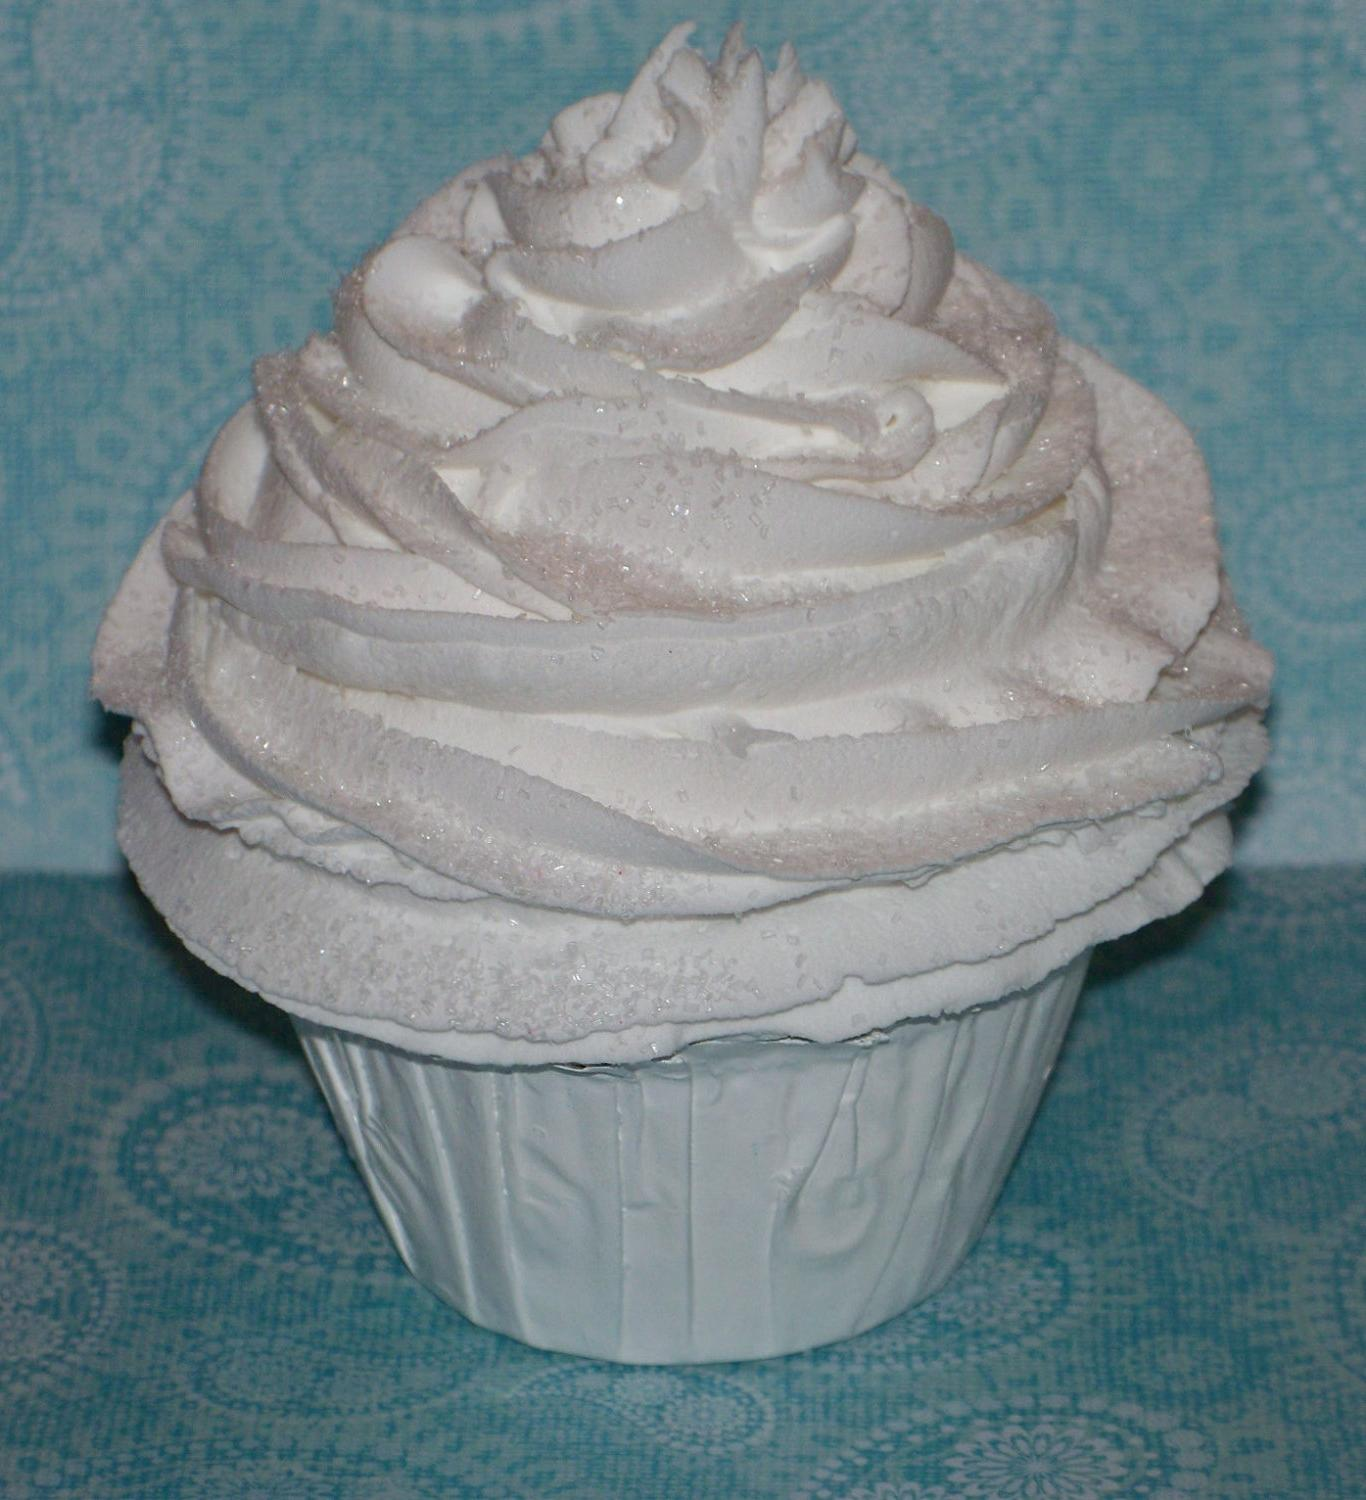 Shabby Chic Cottage Classic White Large White Cupcake for Weddings,